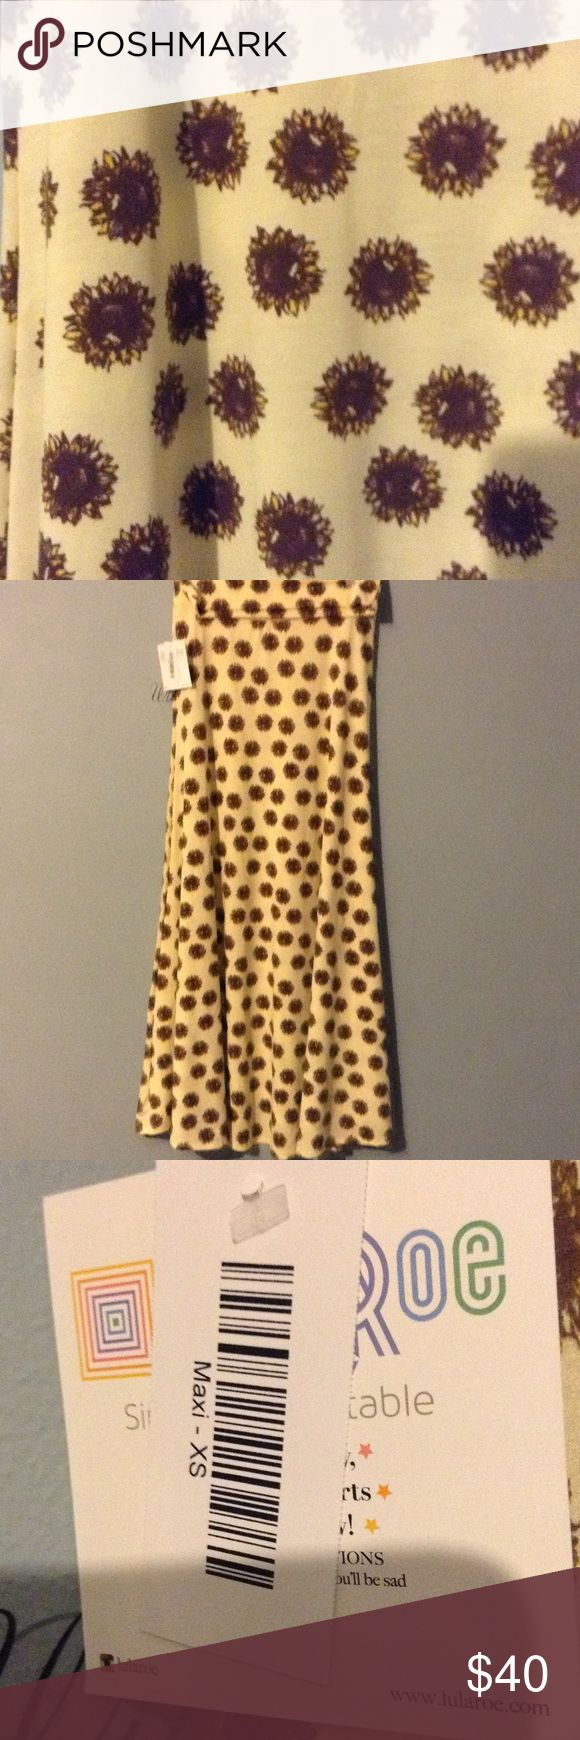 🌻🌻LulaRoe Sunflower maxi 🌻🌻 Gorgeous htf LulaRoe Sunflower print maxi. NWT never tried on! 😔 because it is cottony material, it will not fit me. Someone buy this beauty quick!!    *make offer* LuLaRoe Skirts Maxi